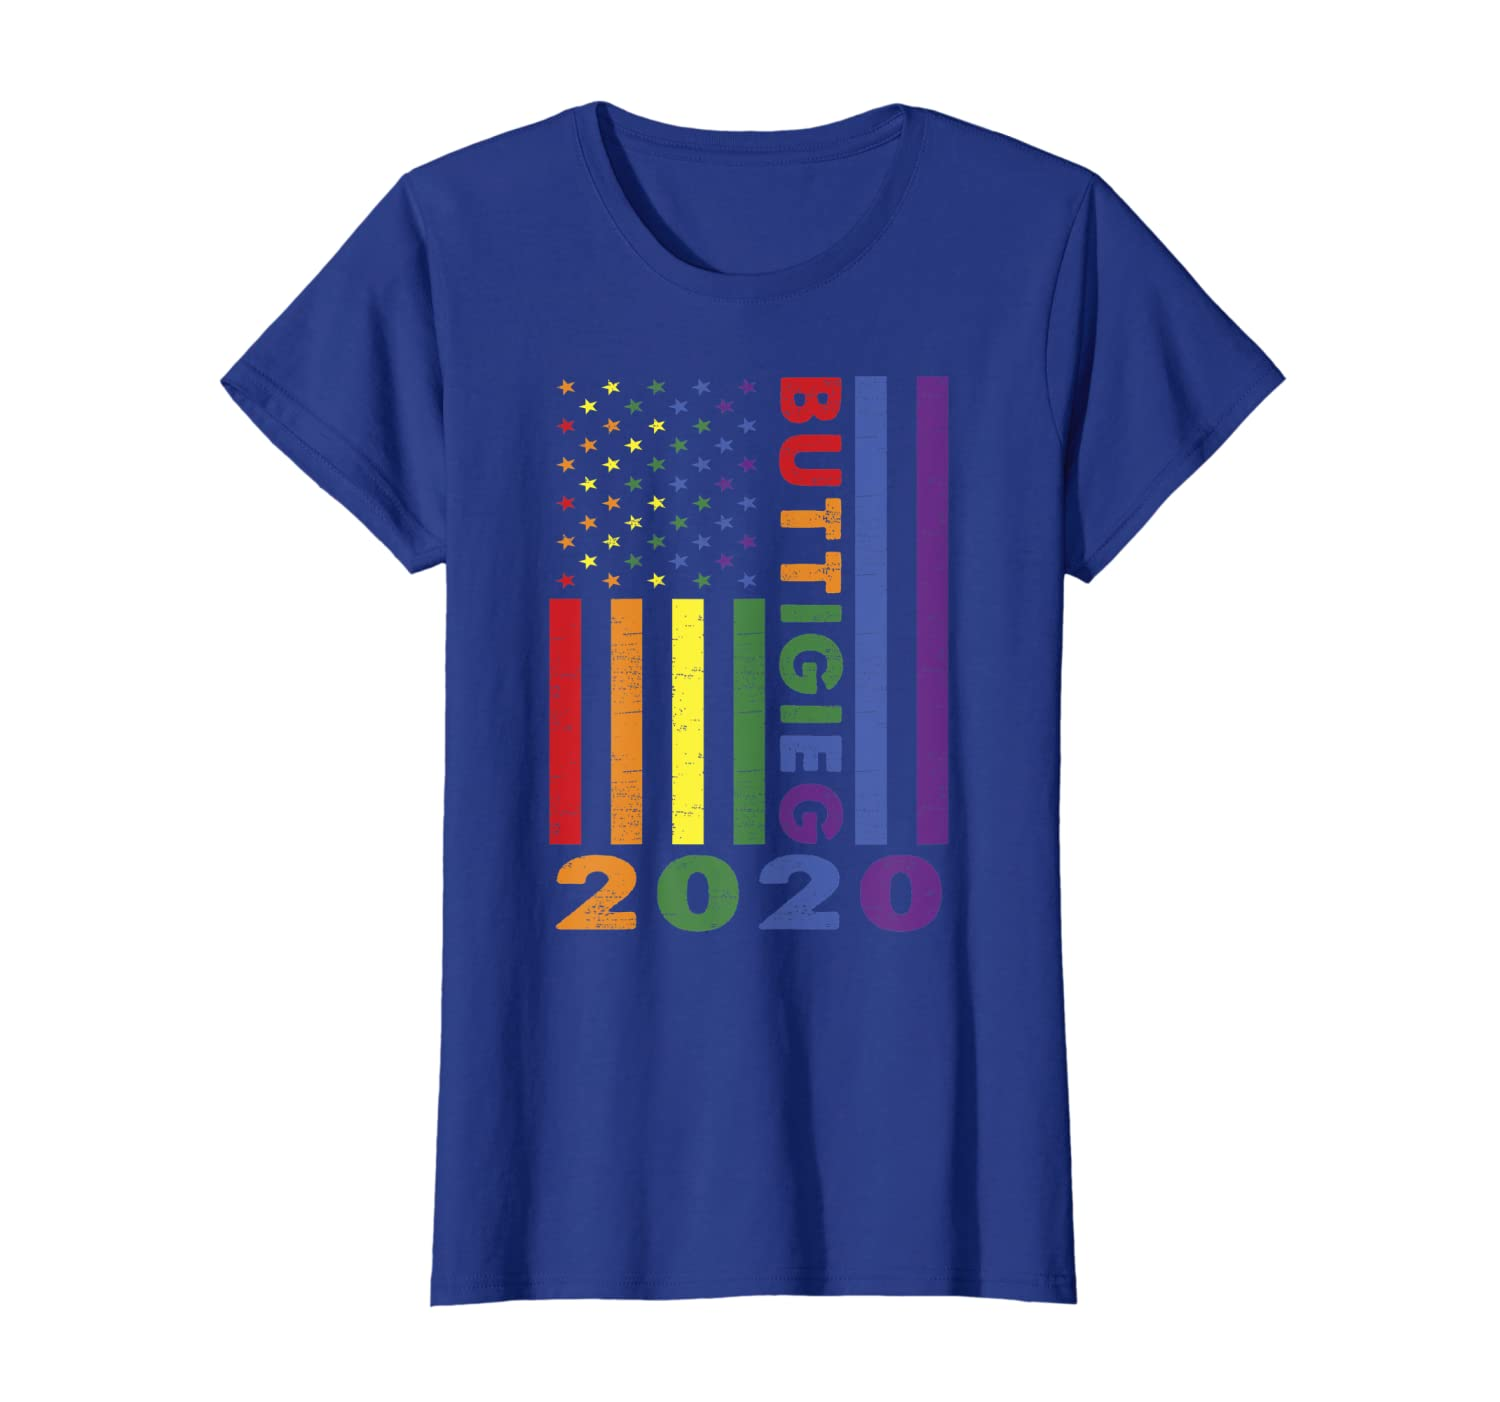 Buttigieg 2020 Distressed Rainbow LGBT Pride Flag T-Shirt-Loveshirt